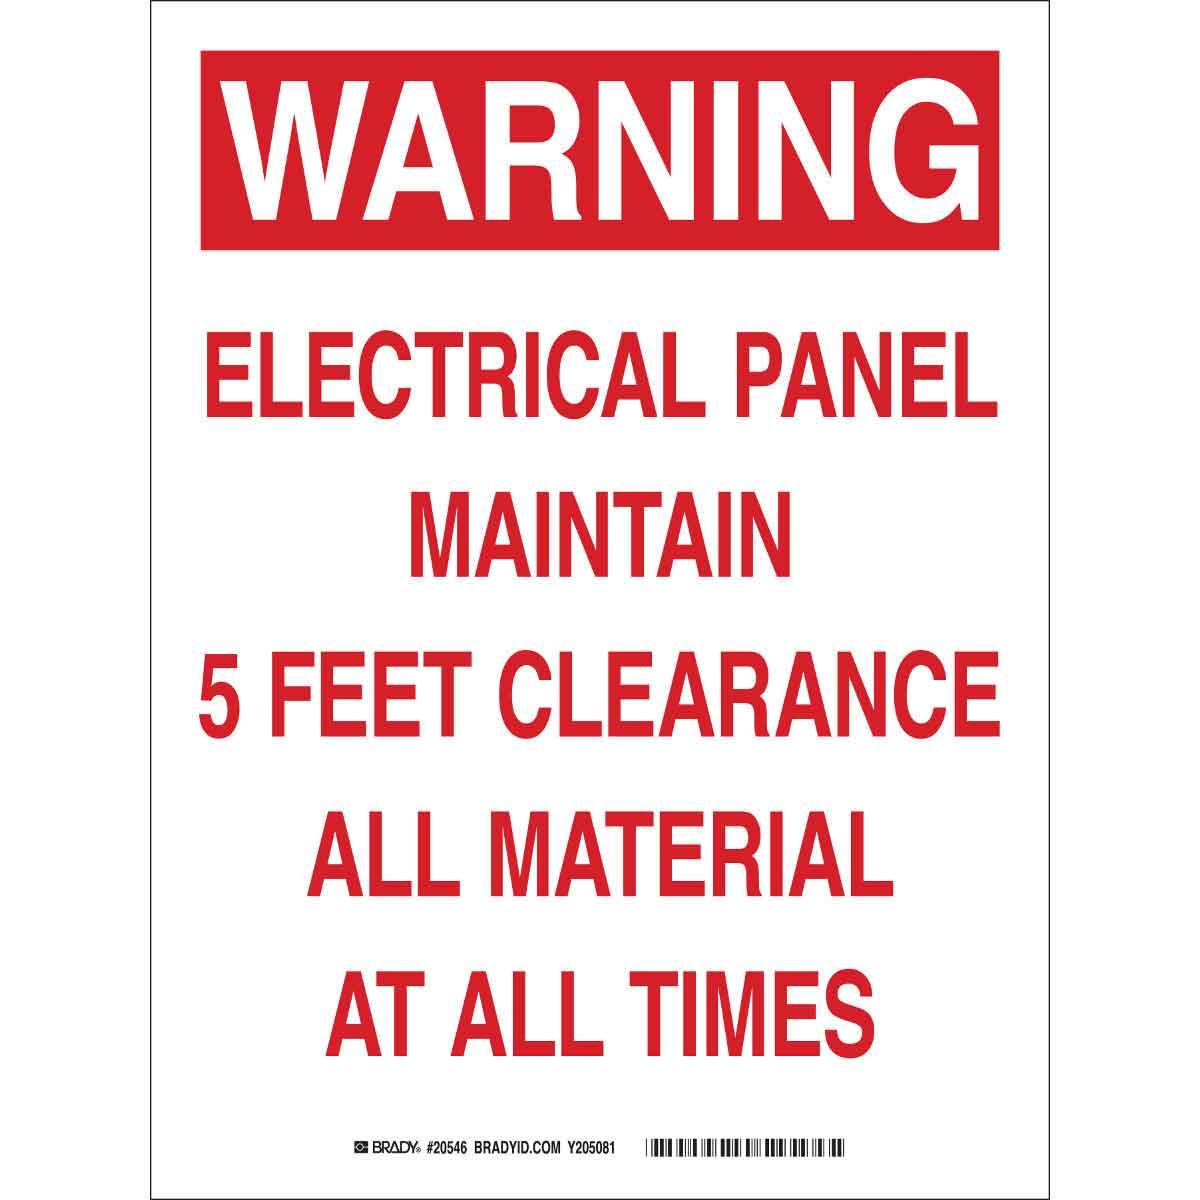 dy Part: 20546 | WARNING Electrical Panel Maintain 5 Feet ... on electric panels and disconnects, nfpa electrical panel clearance, osha electrical panel clearance, eletric tape panel clearance, nec panel clearance, national electrical code panel clearance,